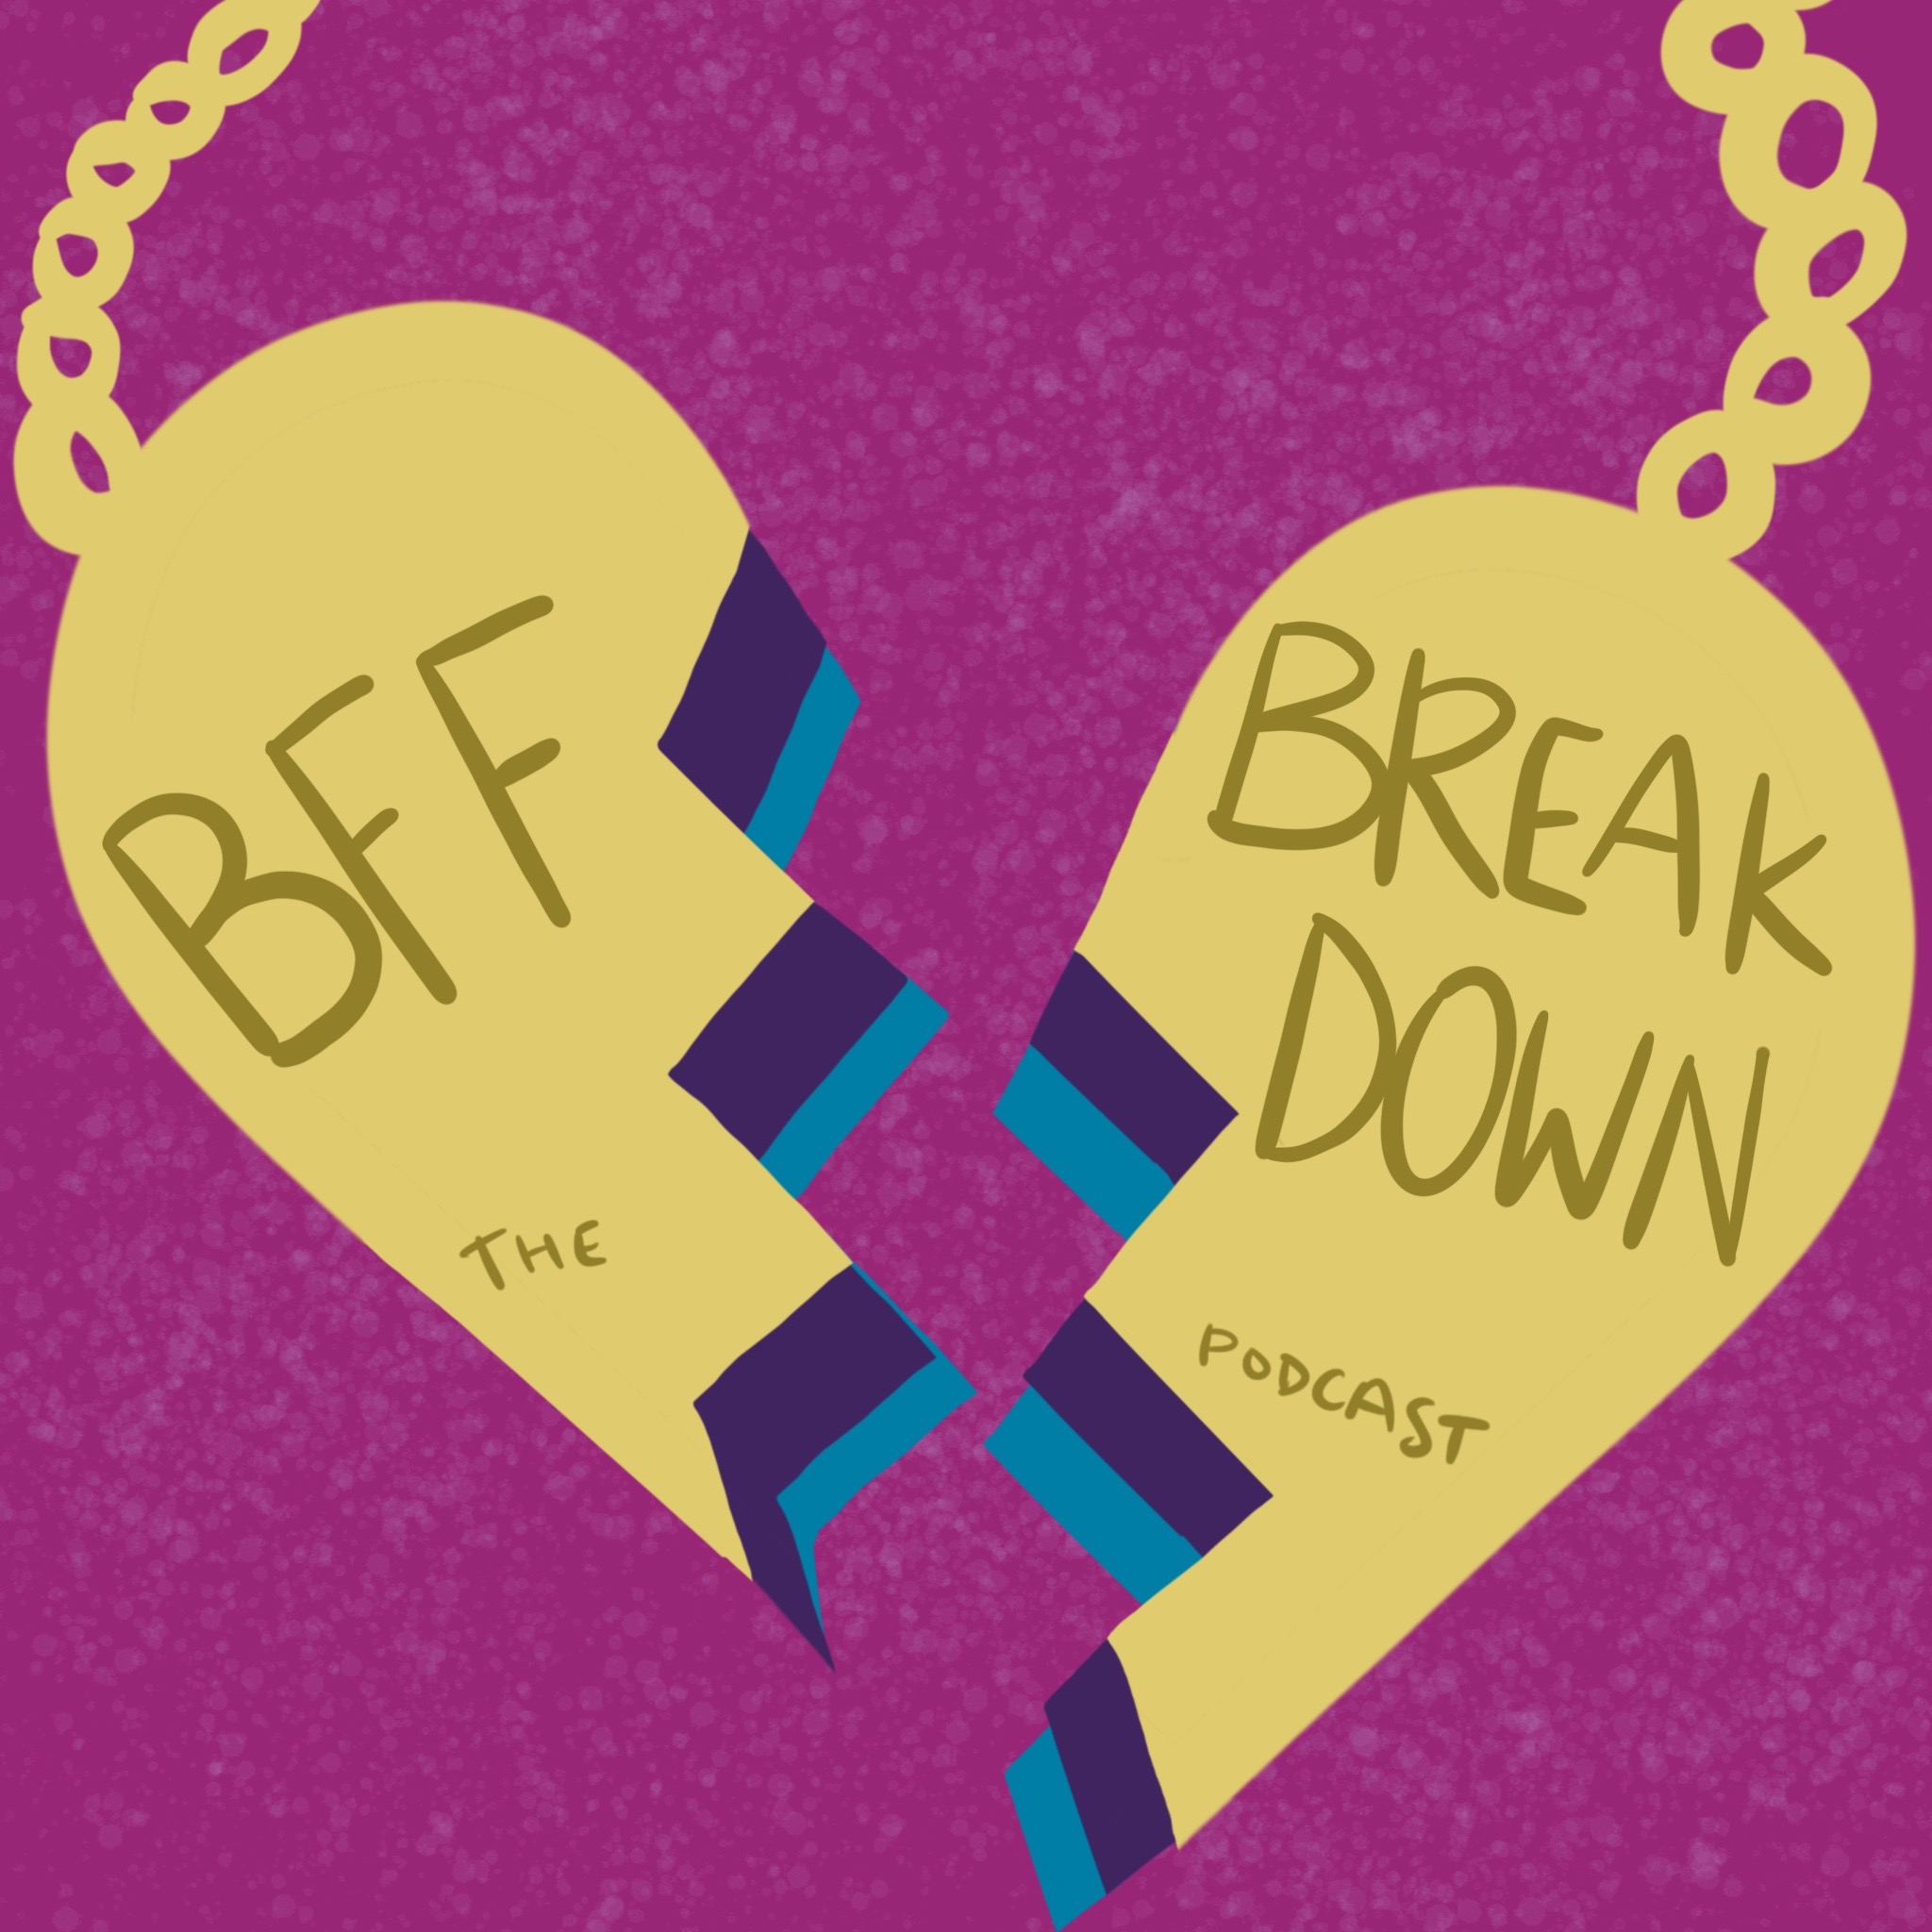 BFF Breakdown Logo (2020)